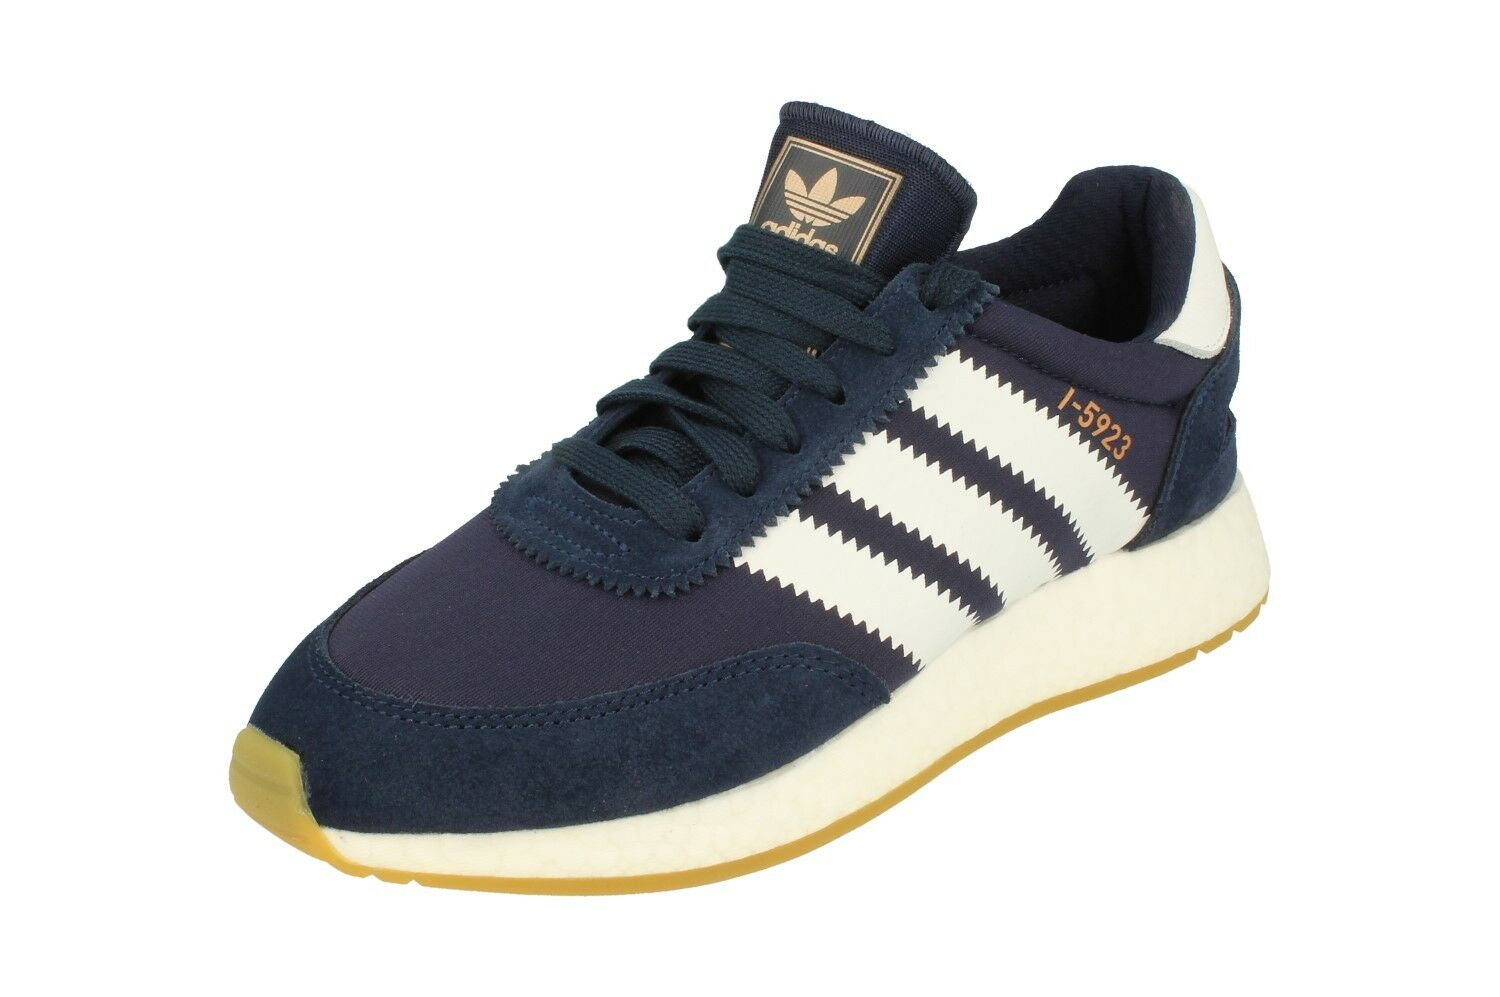 Adidas Originals Shoes Iniki Runner Hombre running Trainers bb2092 Sneakers Shoes Originals salvaje Casual Shoes f16e5a